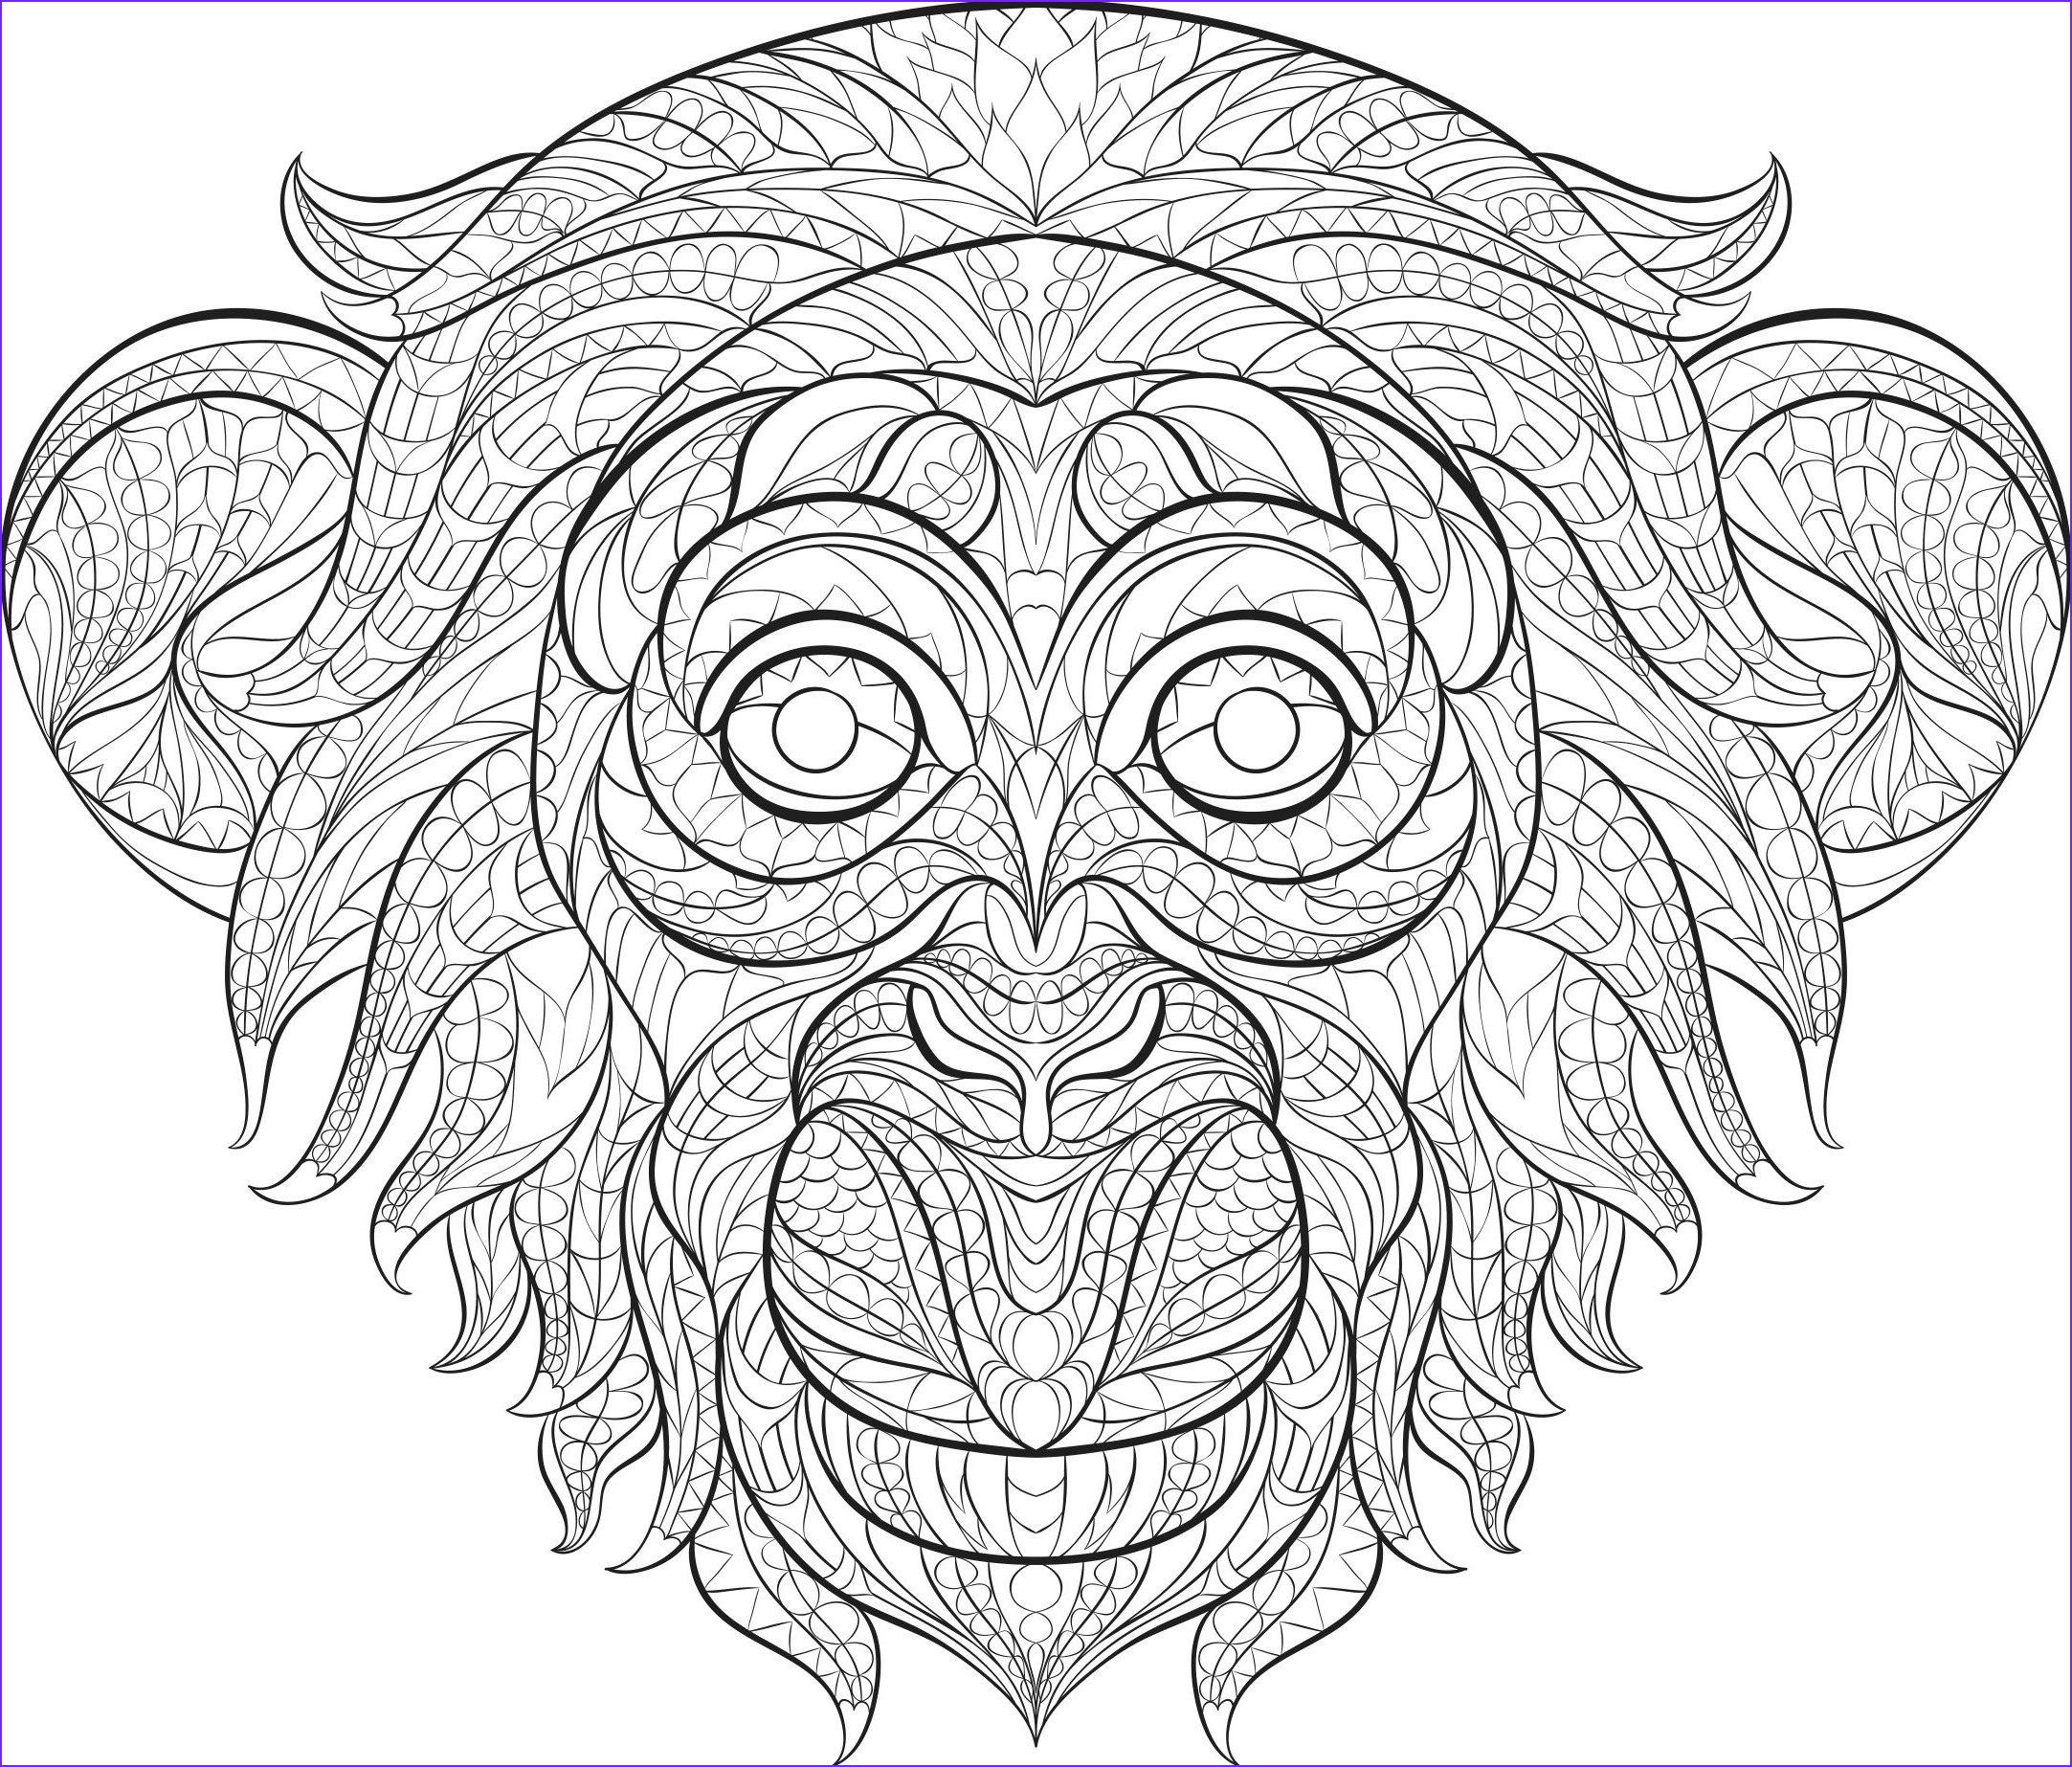 Coloring Stress Cool Gallery Celebrate Chinese New Year with 6 Cool Coloring Pages